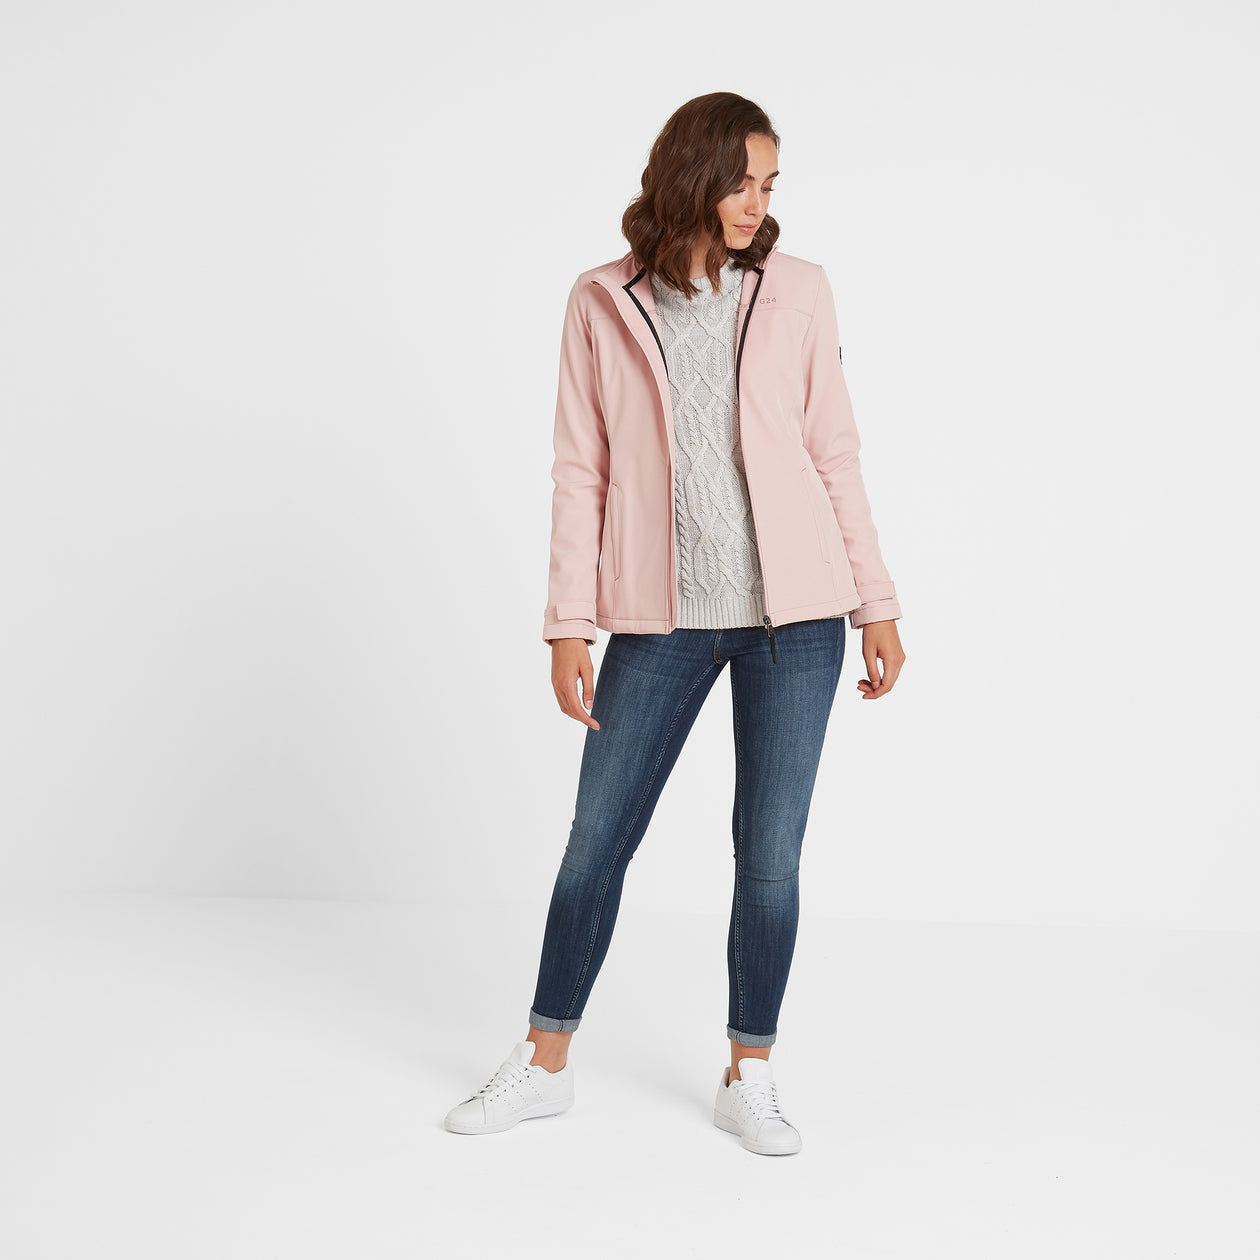 Keld Womens Softshell Jacket - Rose Pink image 4